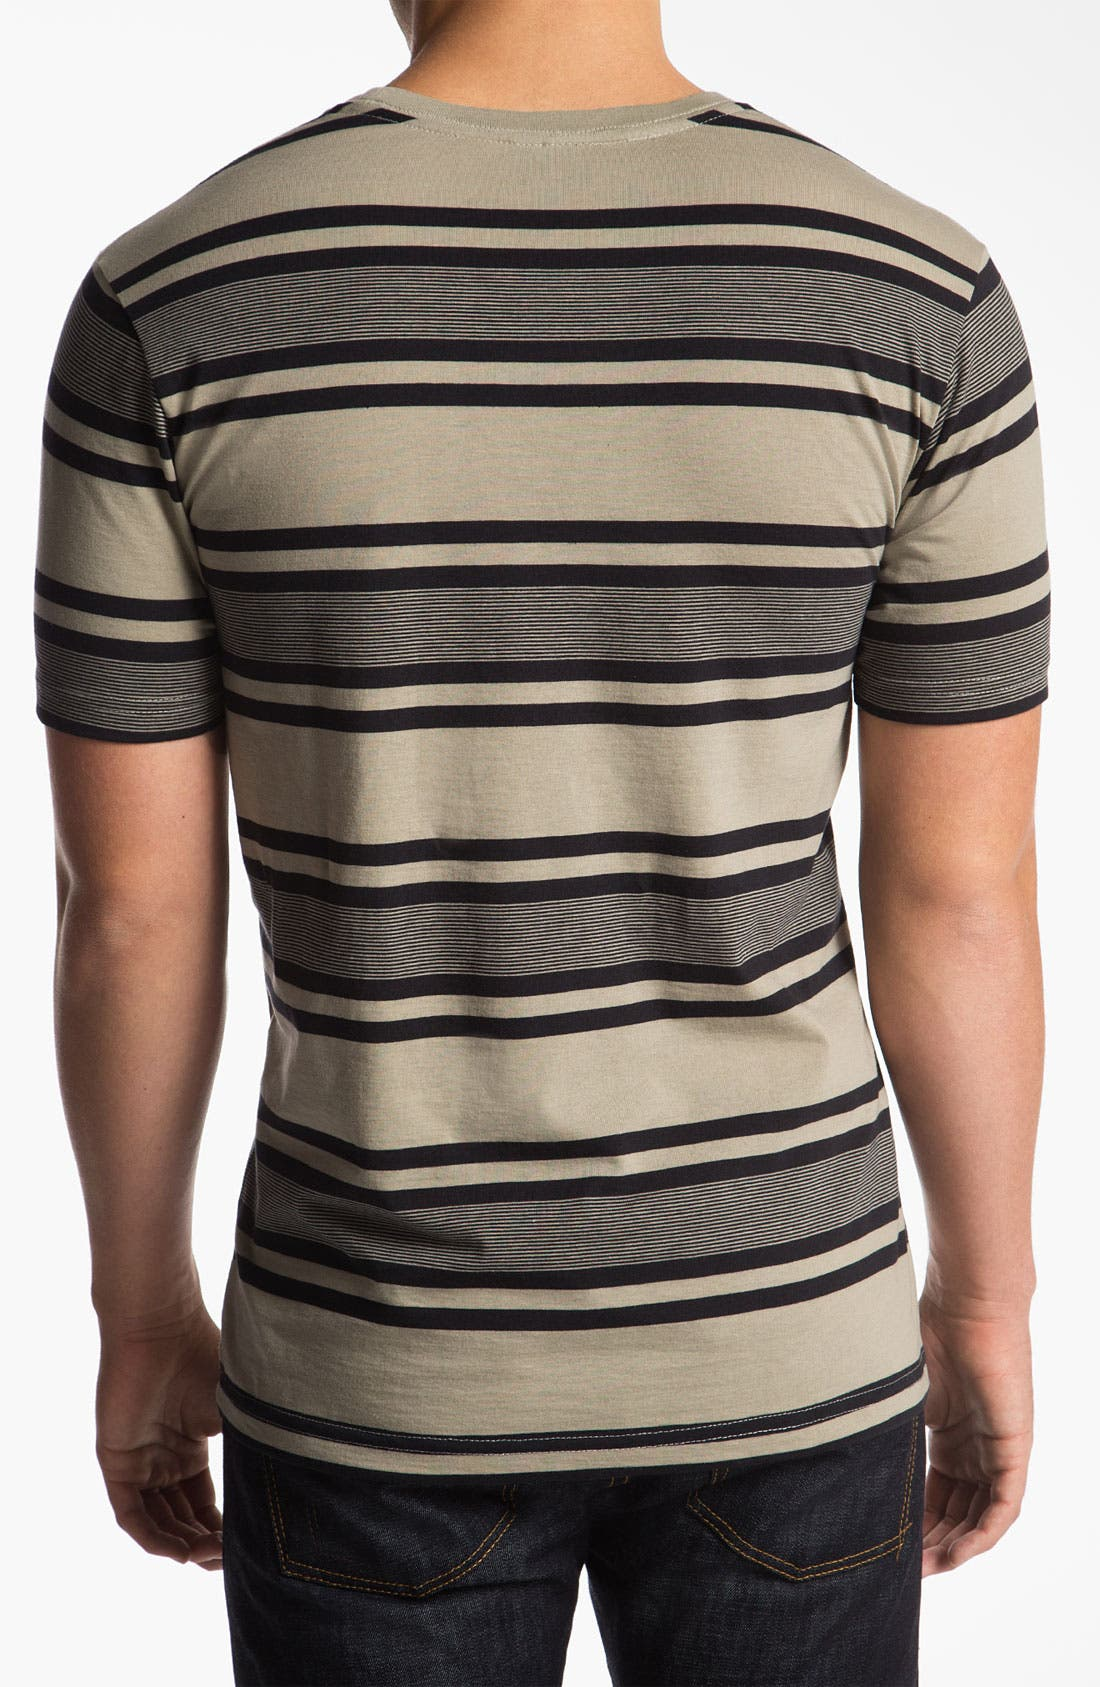 Alternate Image 2  - RVCA 'SOS' Stripe Crewneck T-Shirt